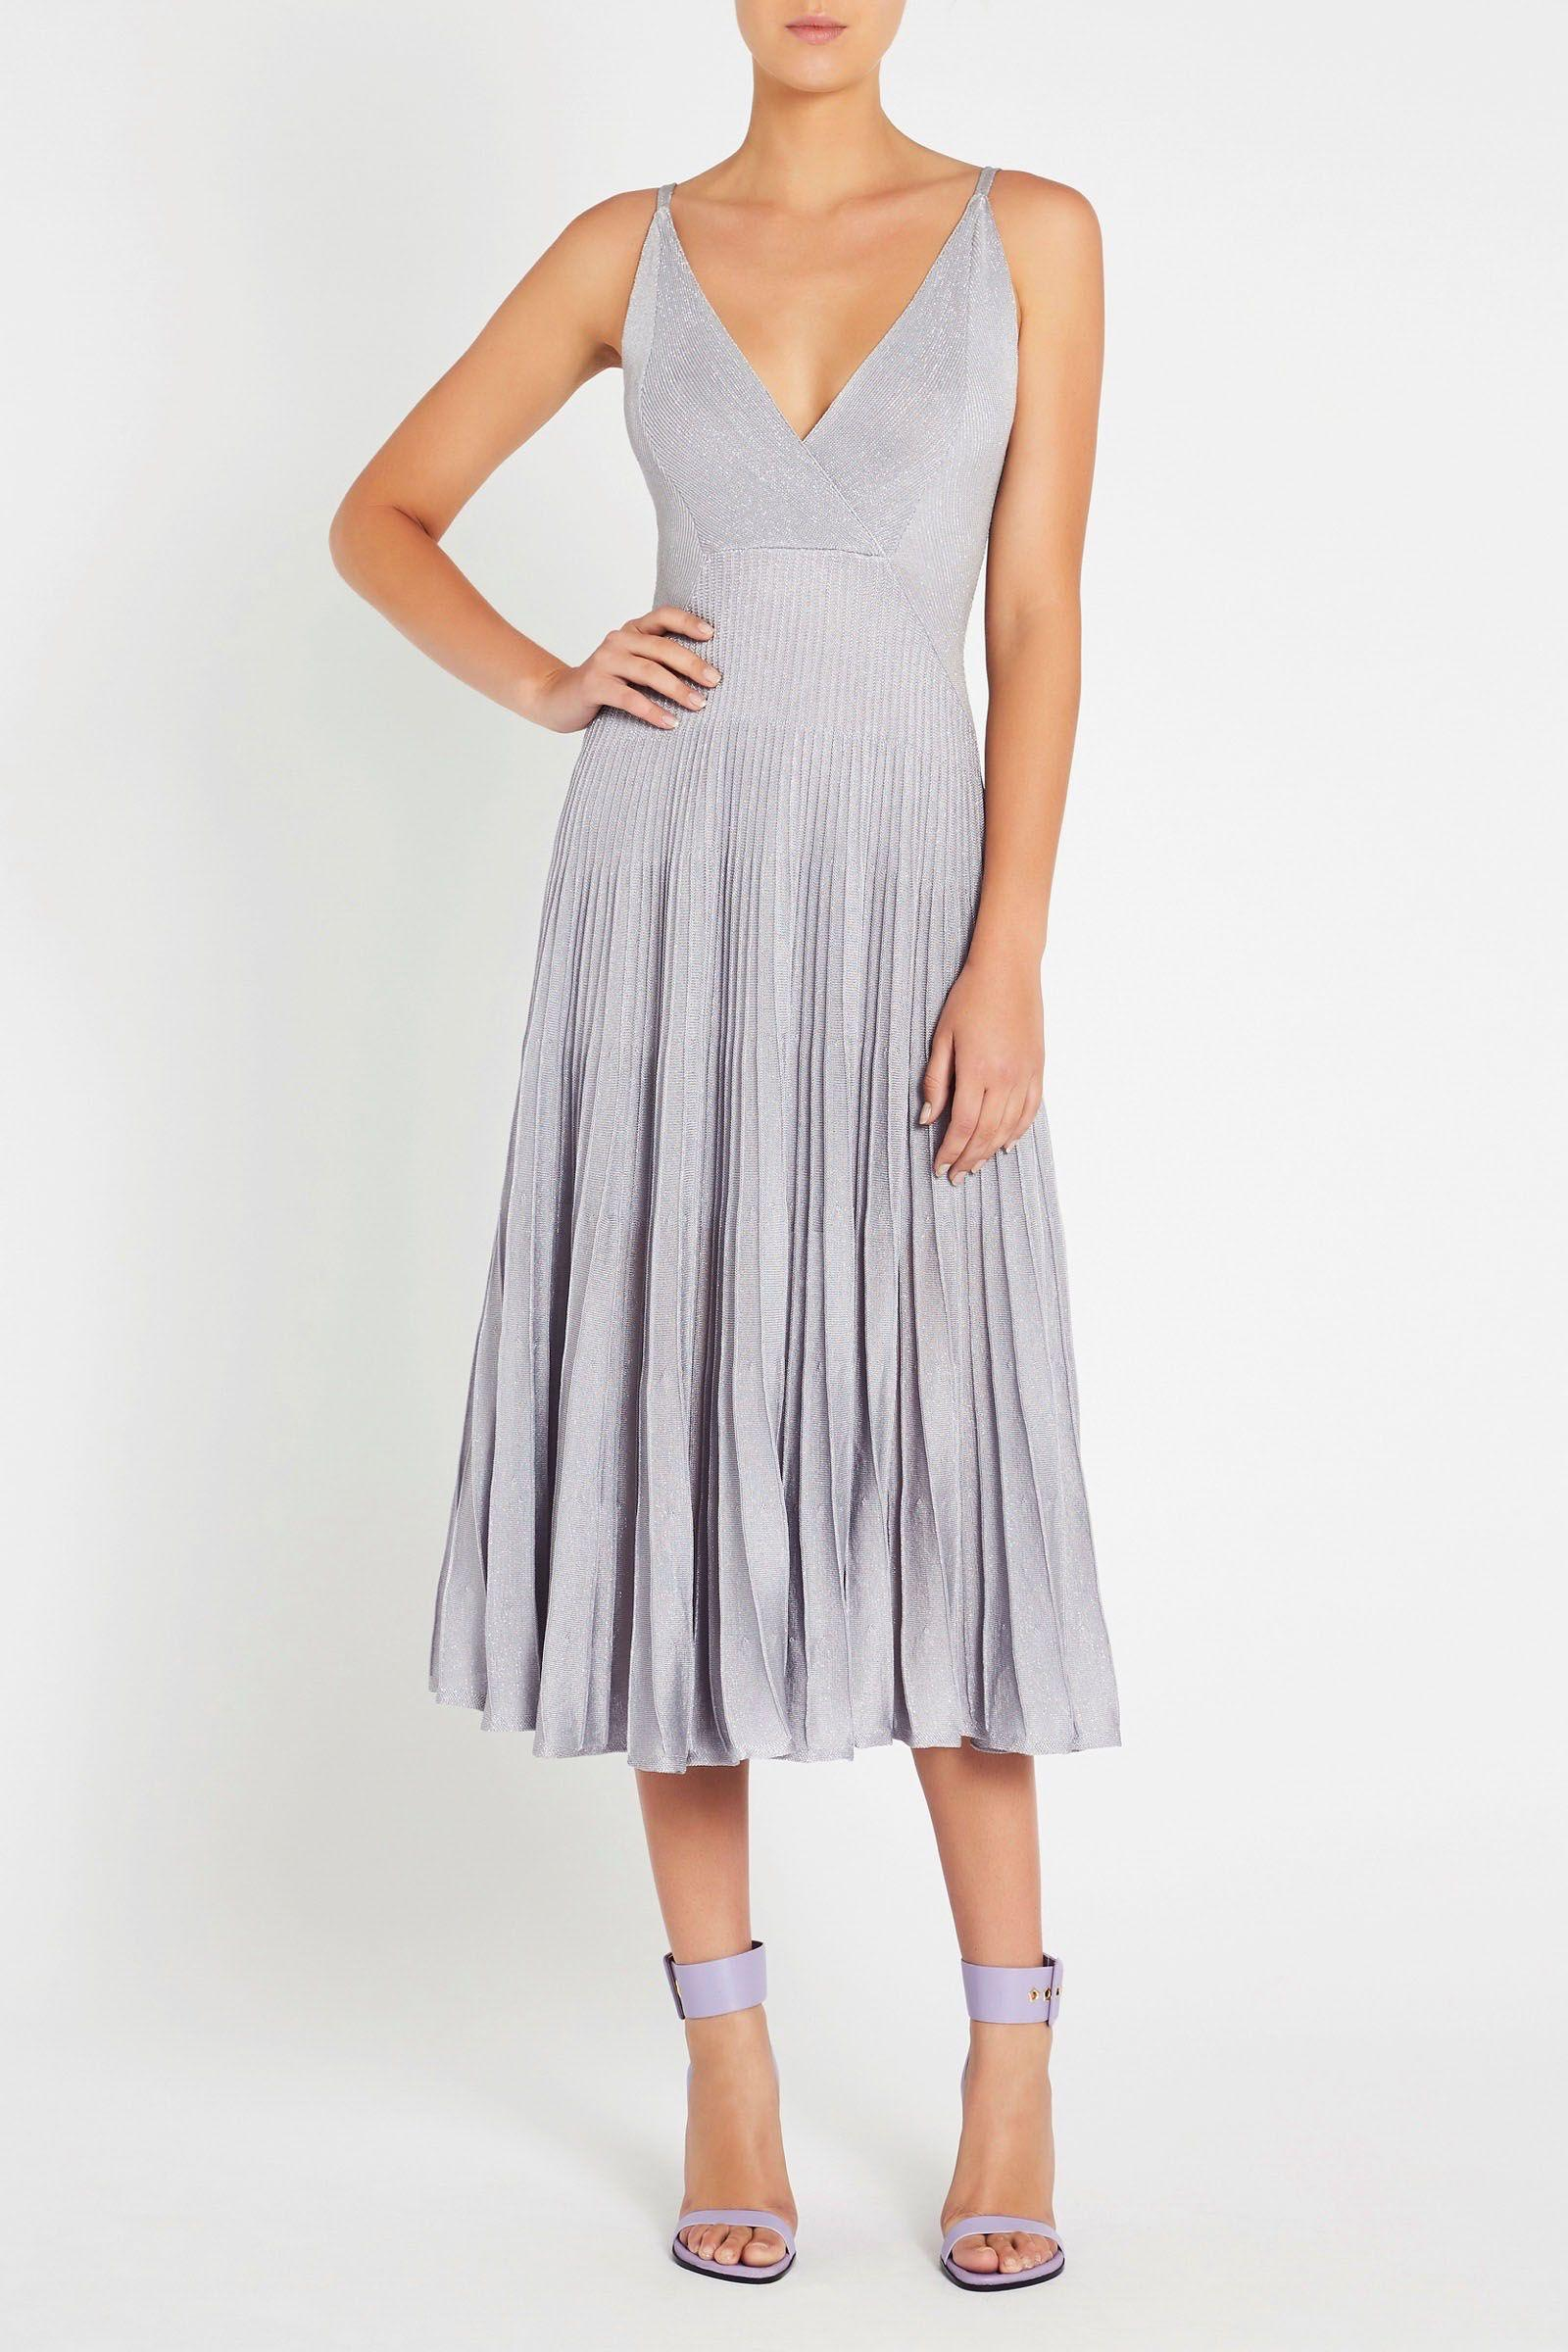 Sass Bide Synthetic Almost Famous Knit Dress In Silver Metallic Lyst